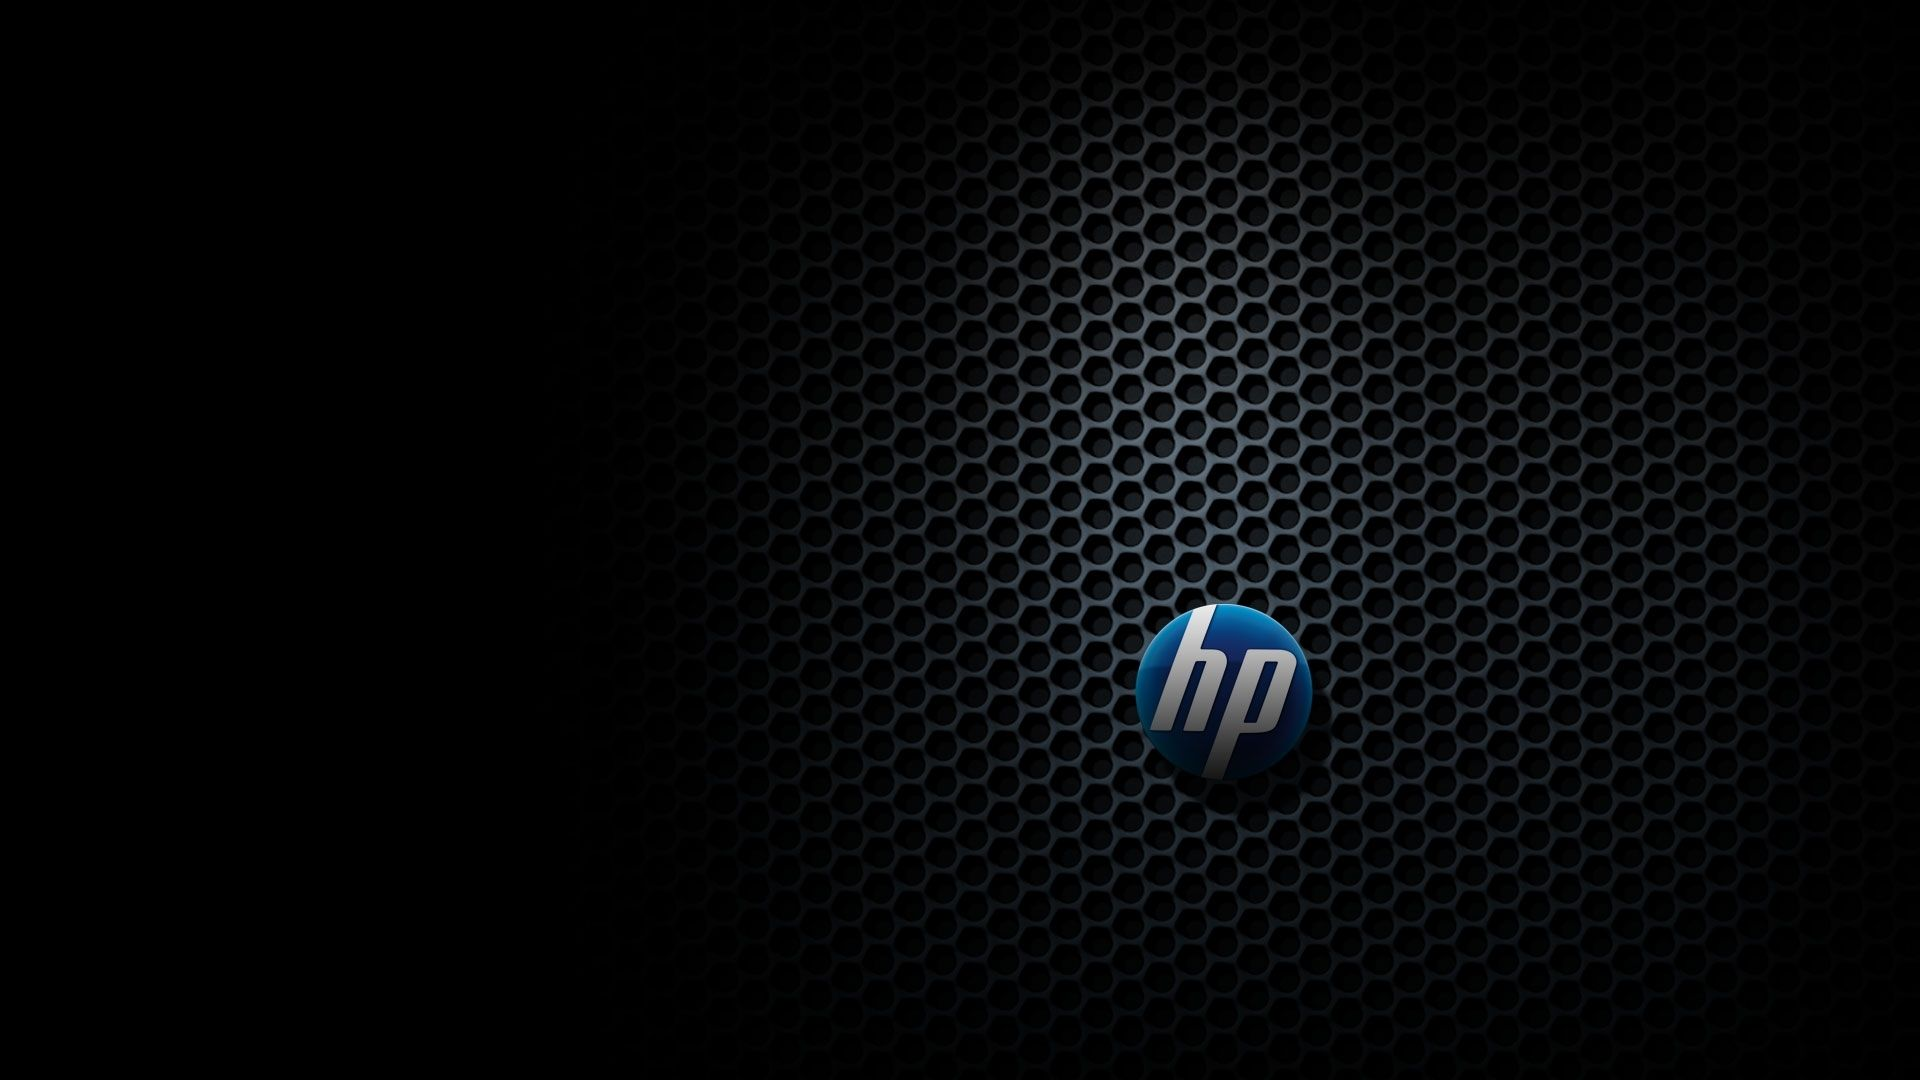 10 Top Hewlett Packard Hd Wallpapers Full Hd 1080p For Pc Background Hd Wallpapers For Laptop Laptop Wallpaper Hp Laptop